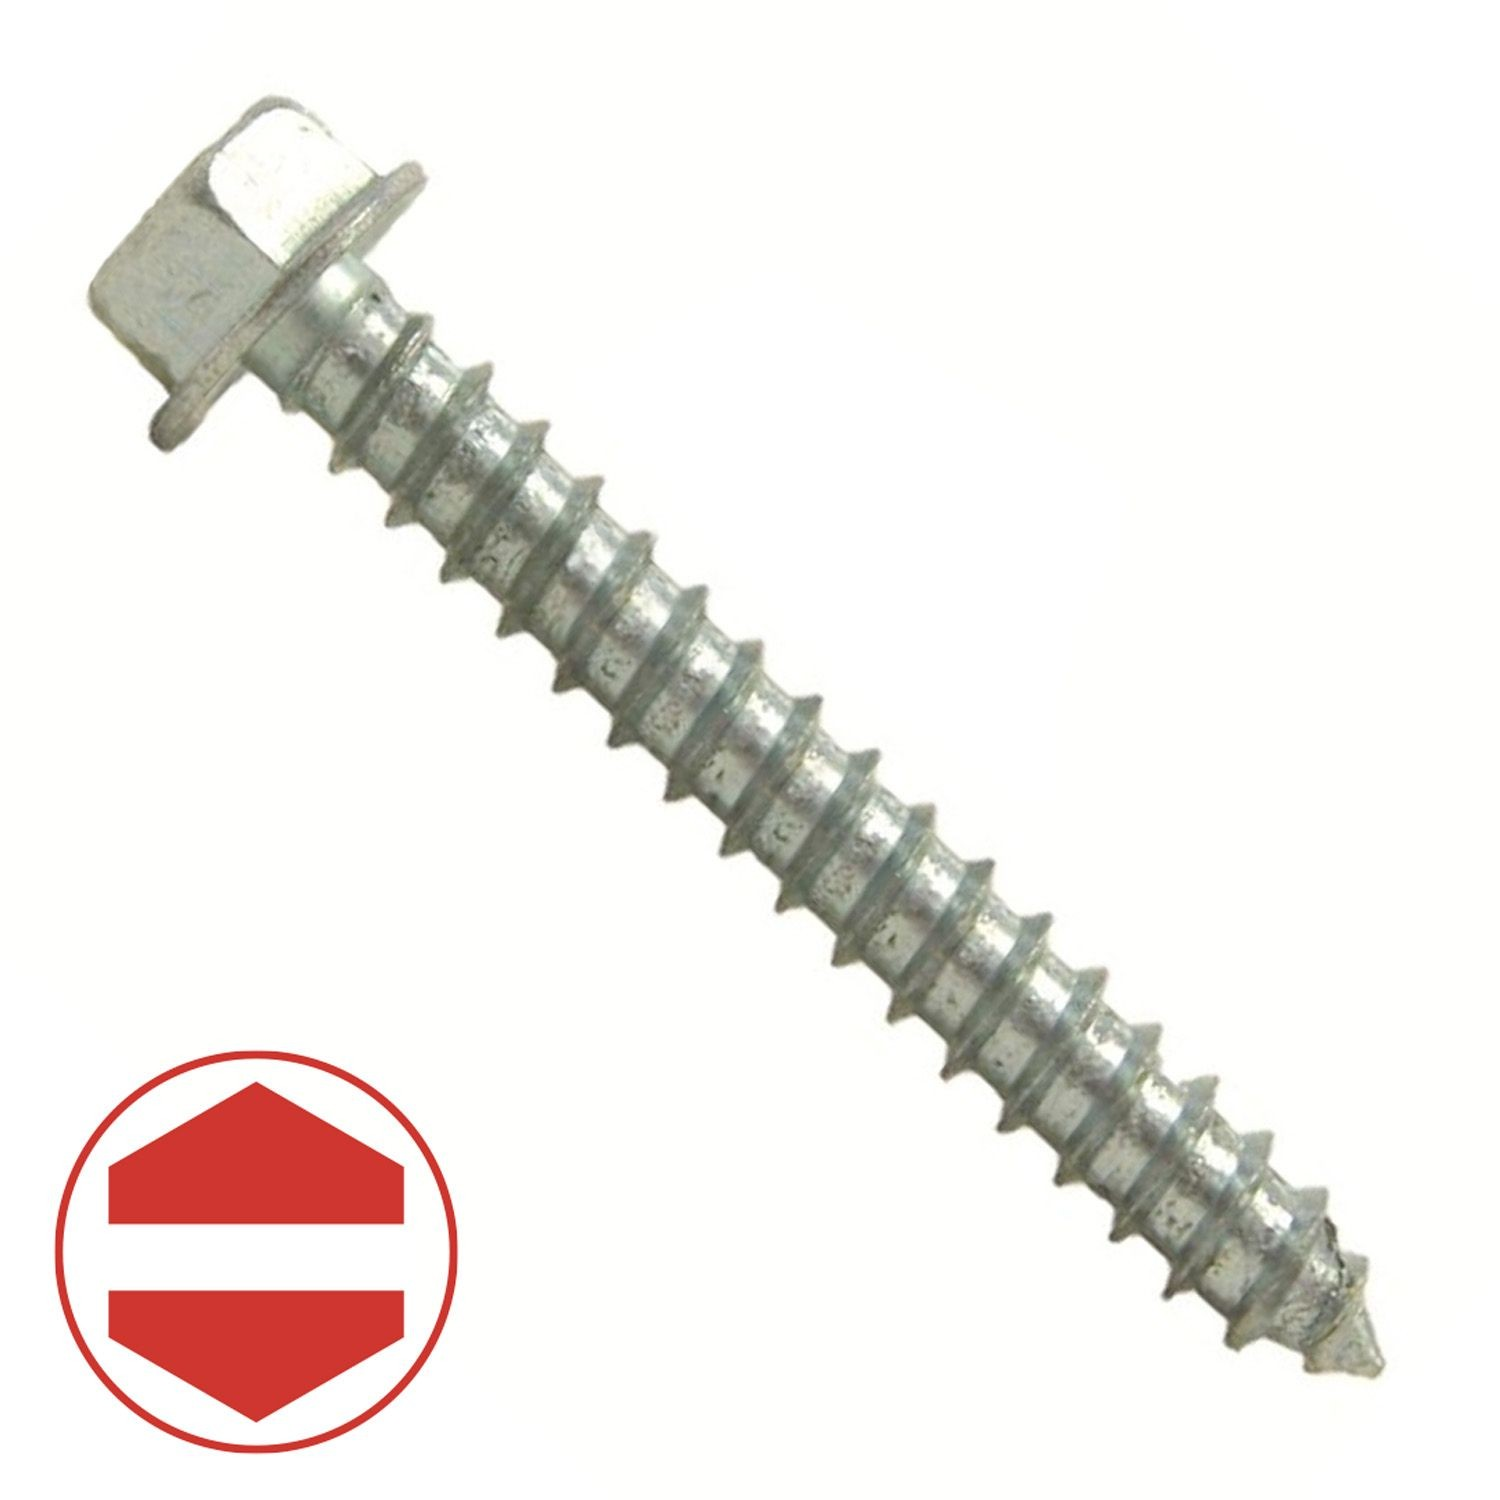 "#10 x 5/8"" Zinc Plated Hex Washer Head Sheet Metal Screw"